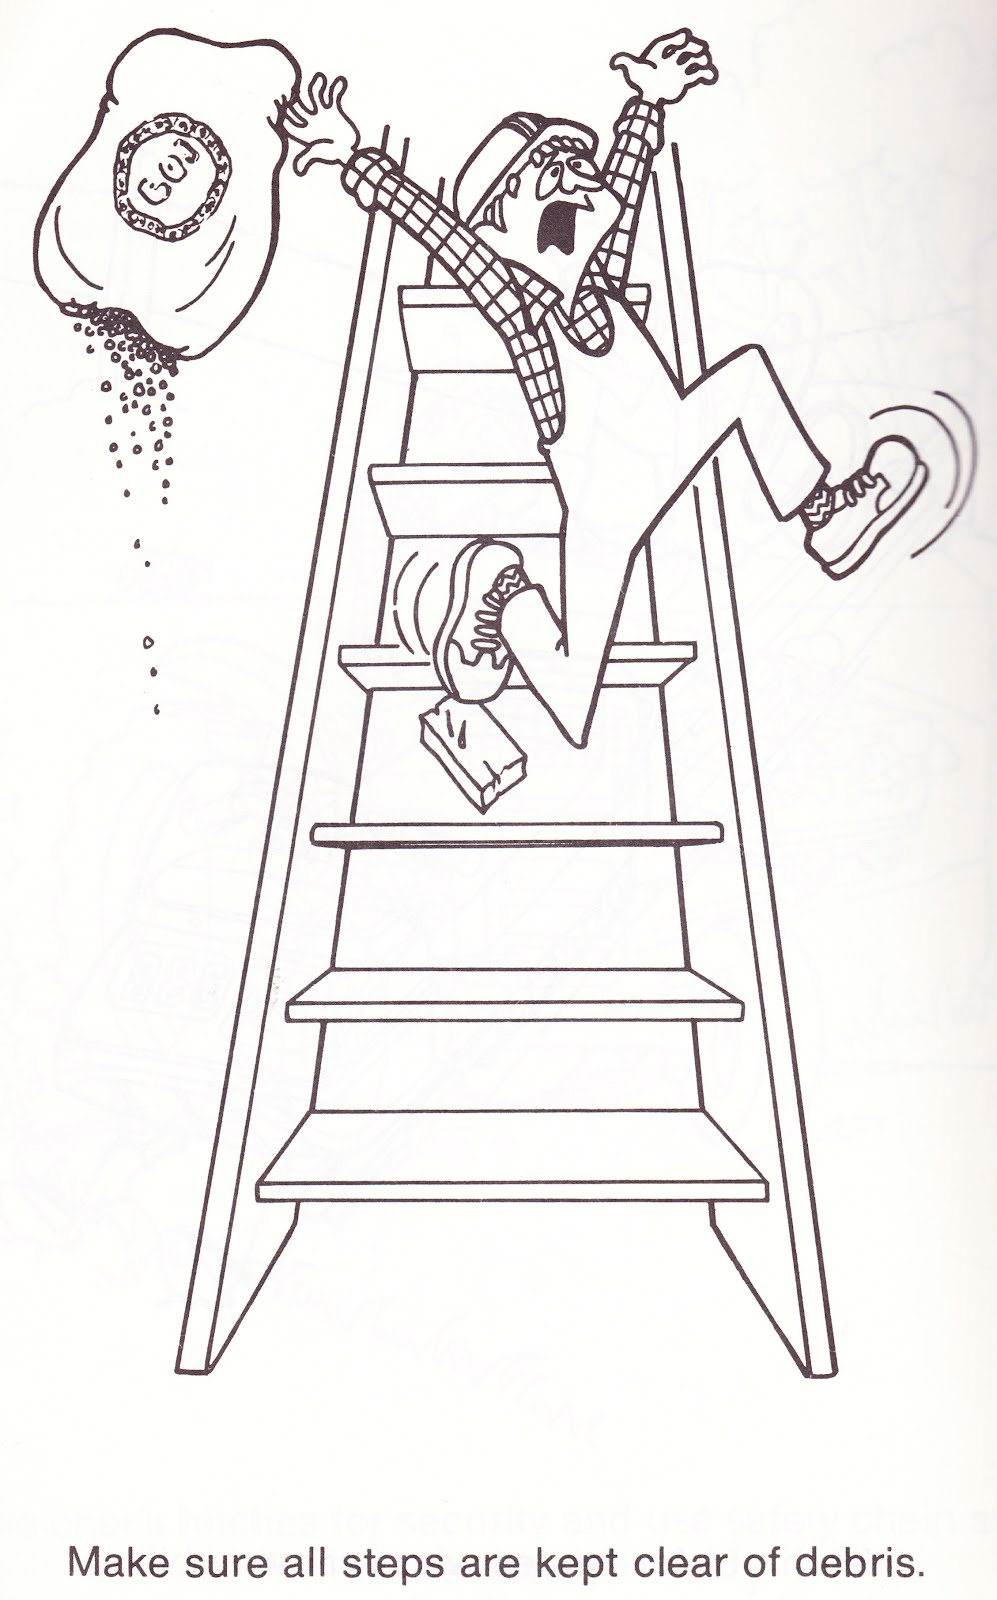 safety warning coloring pages for kids - photo #35